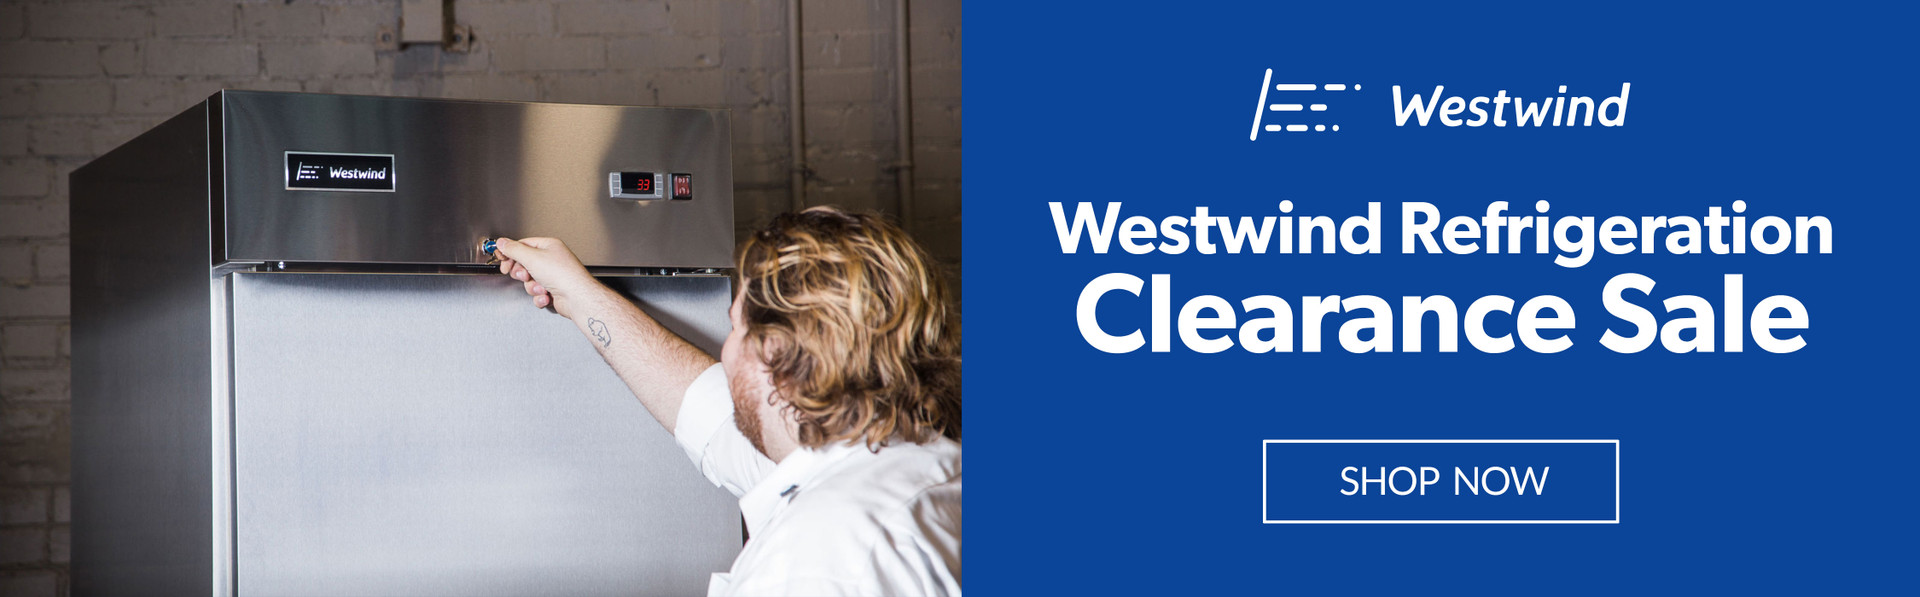 Westwind Clearance Sale